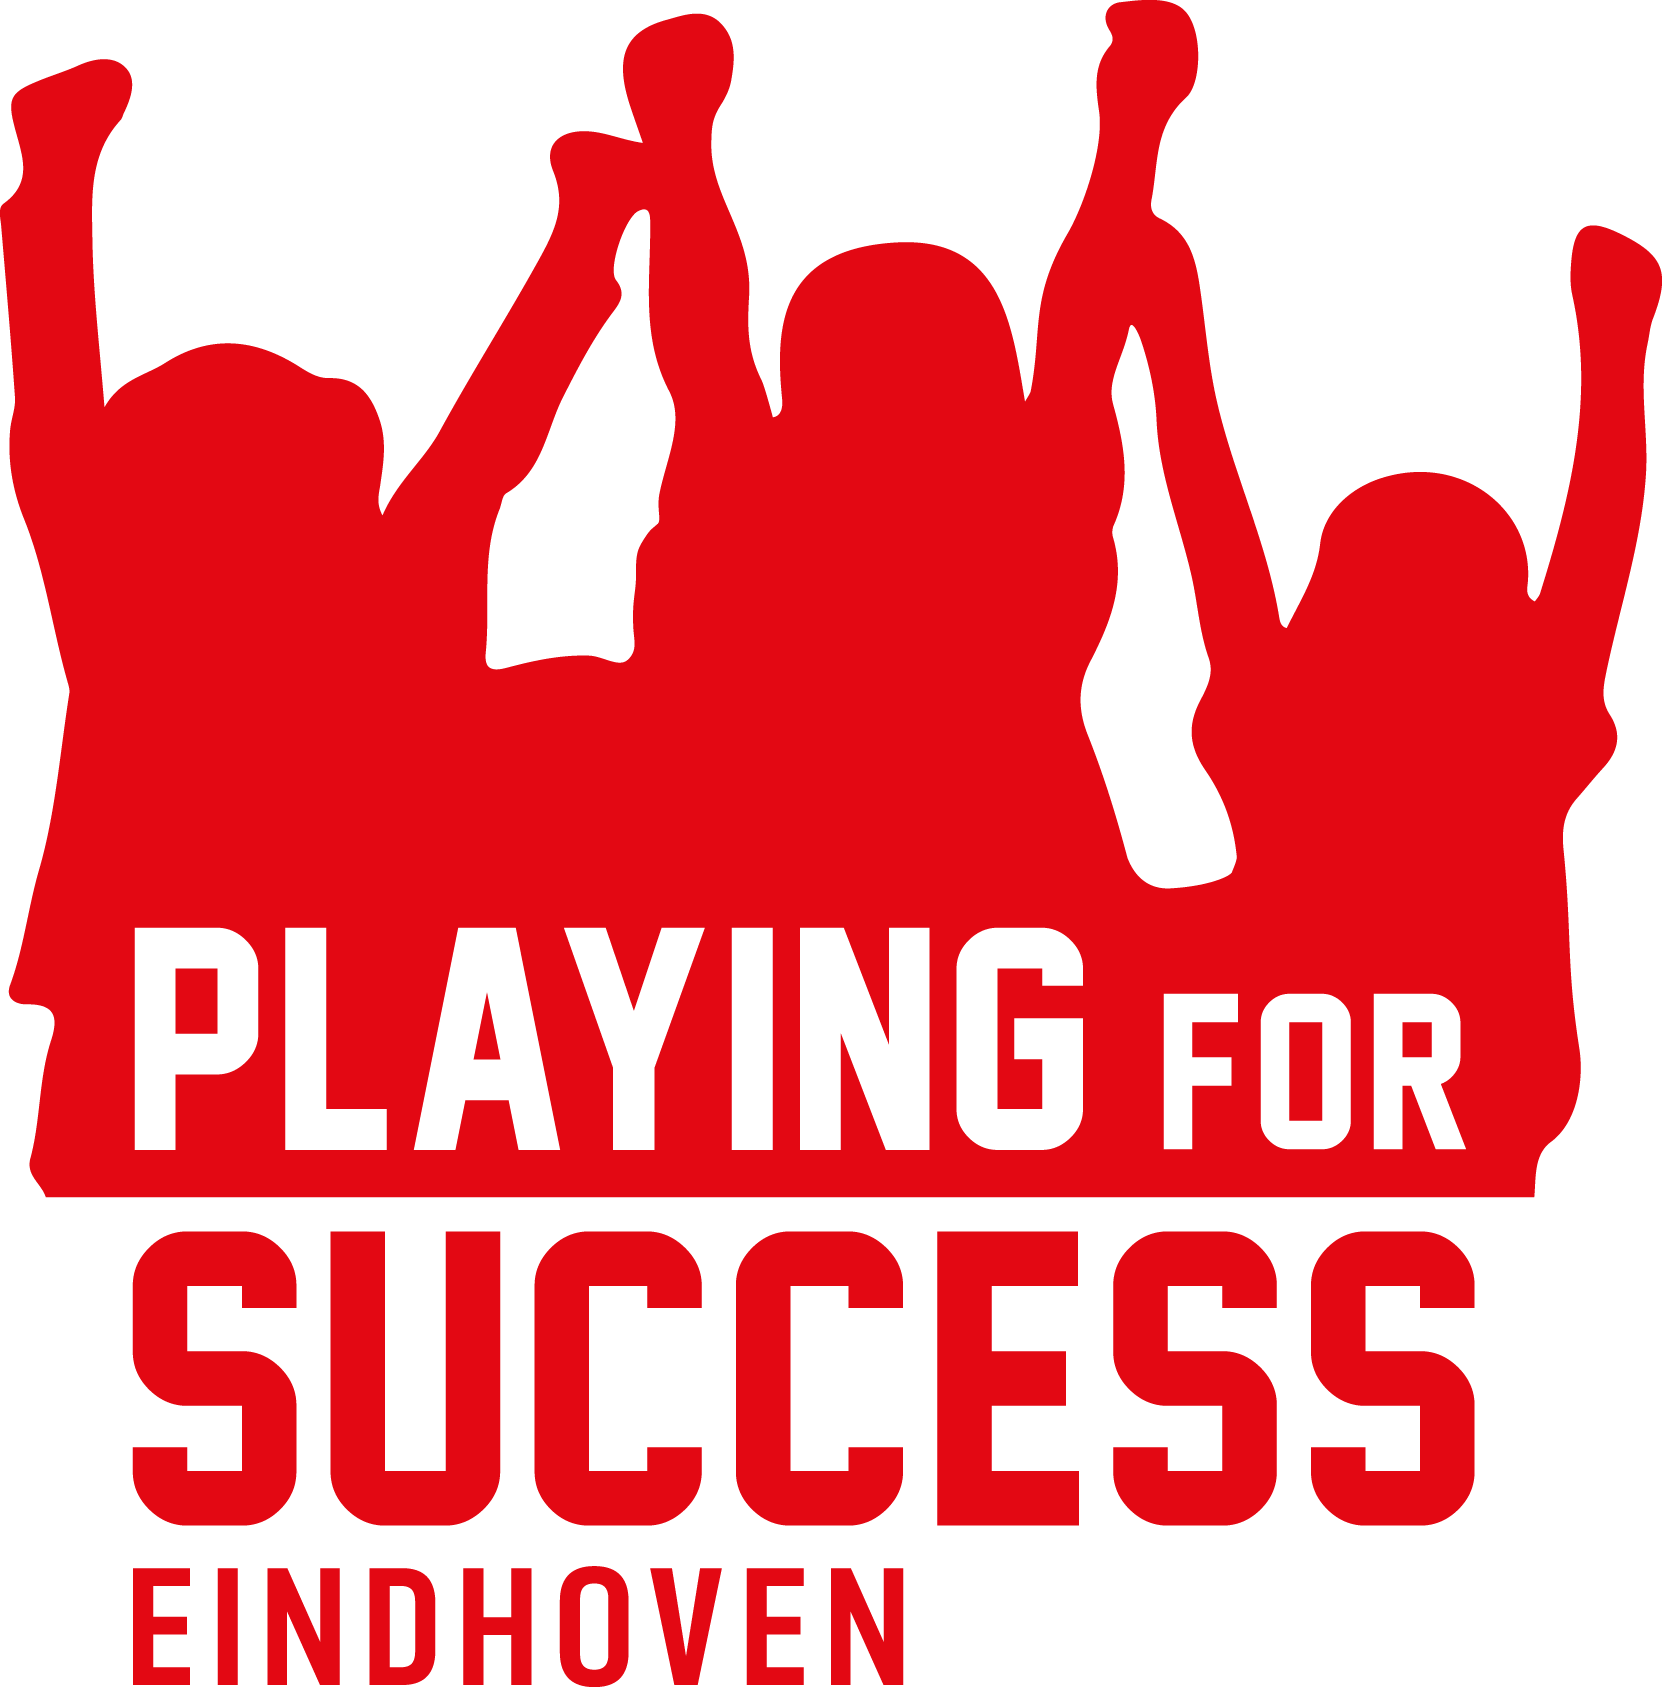 Playing for Succes Eindhoven